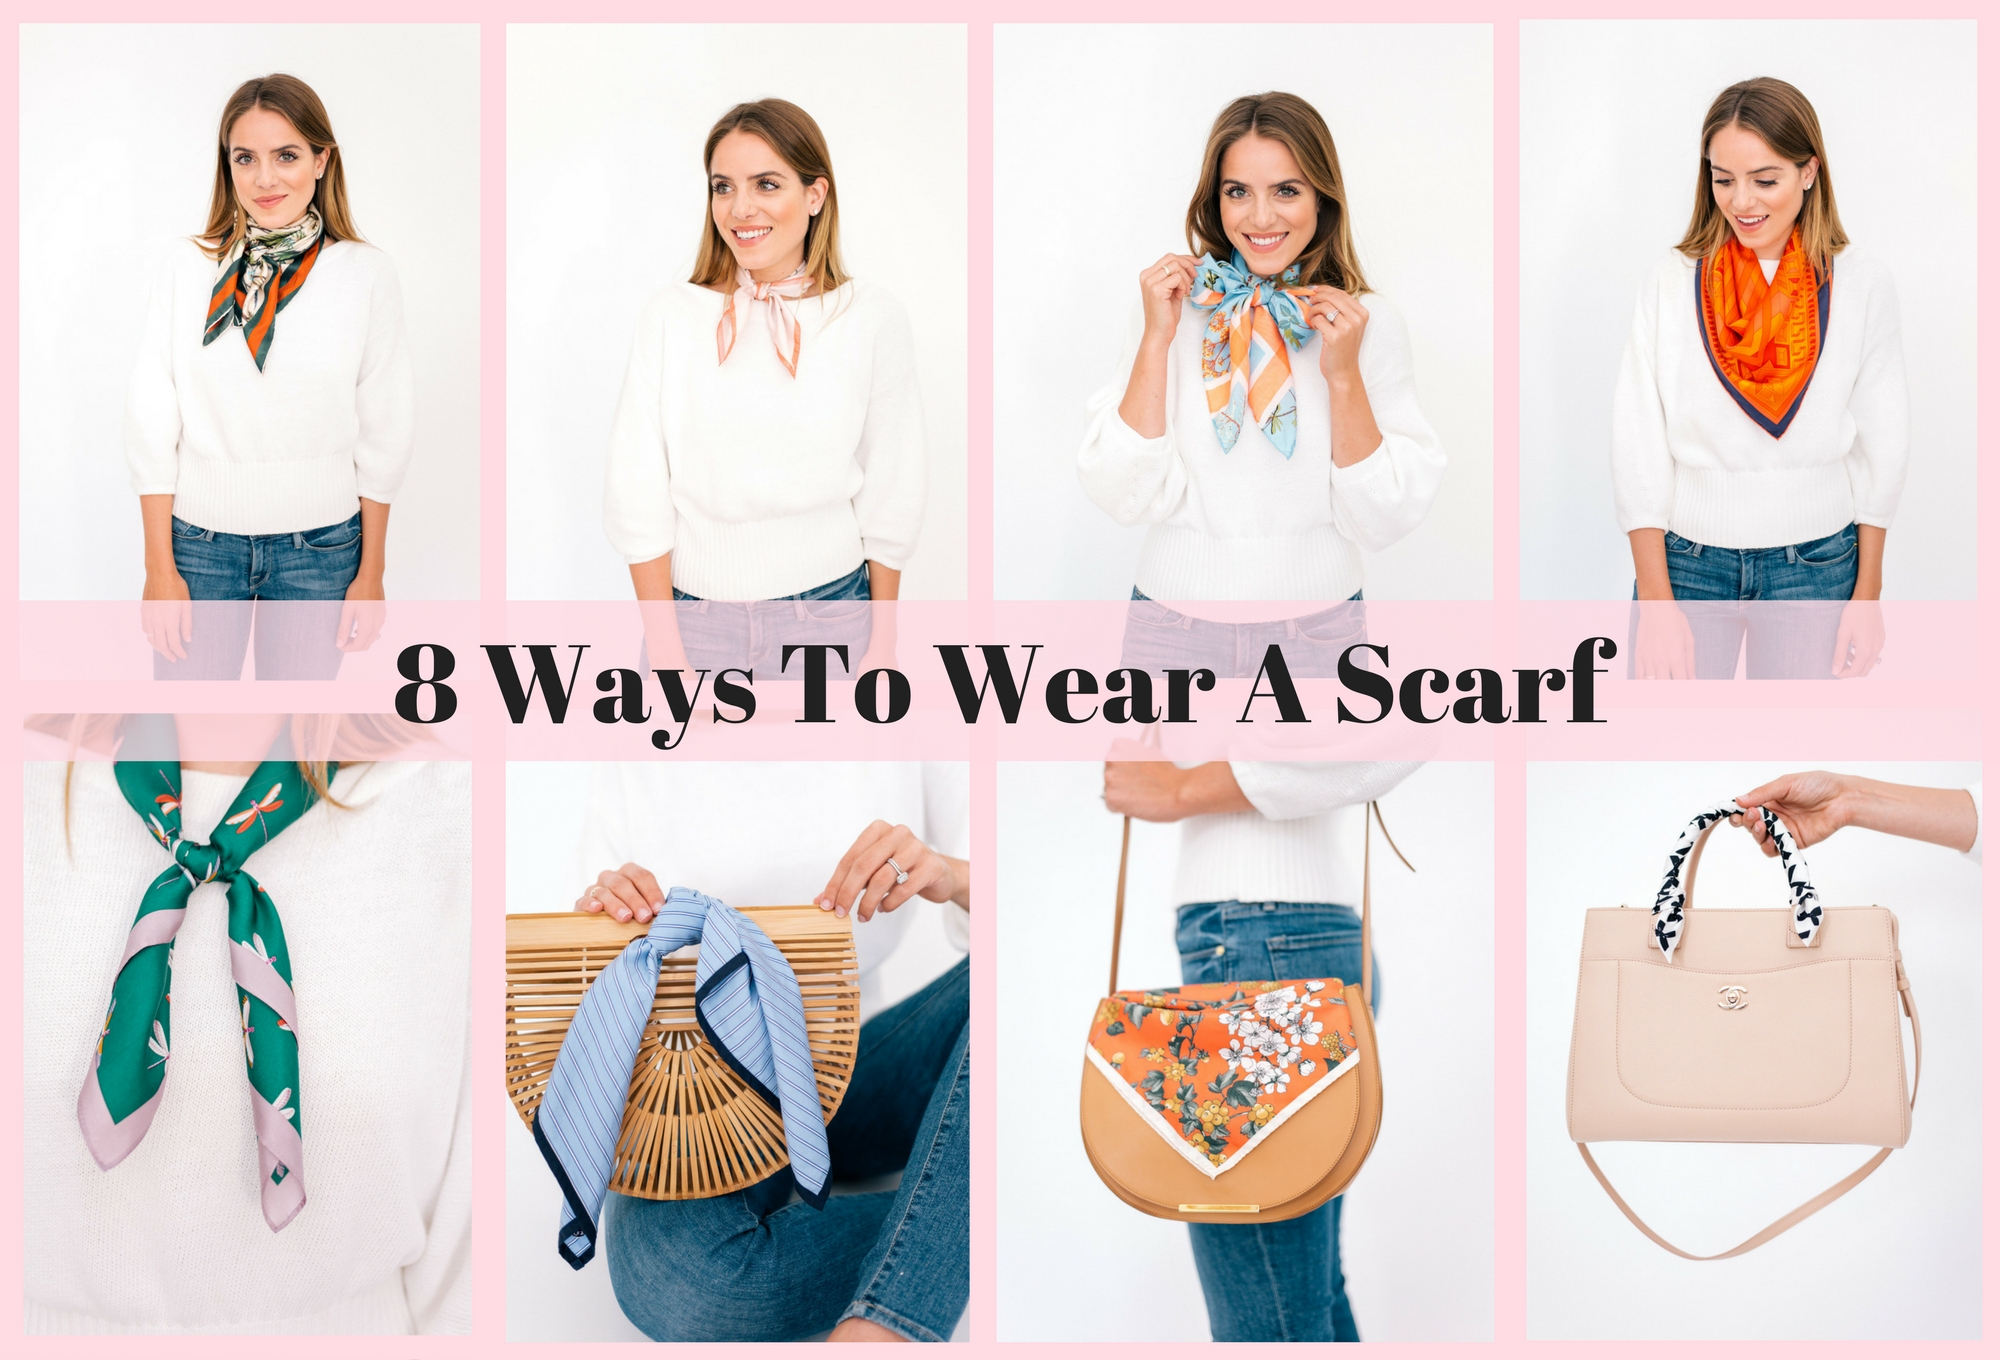 8 Ways To Wear A Scarf